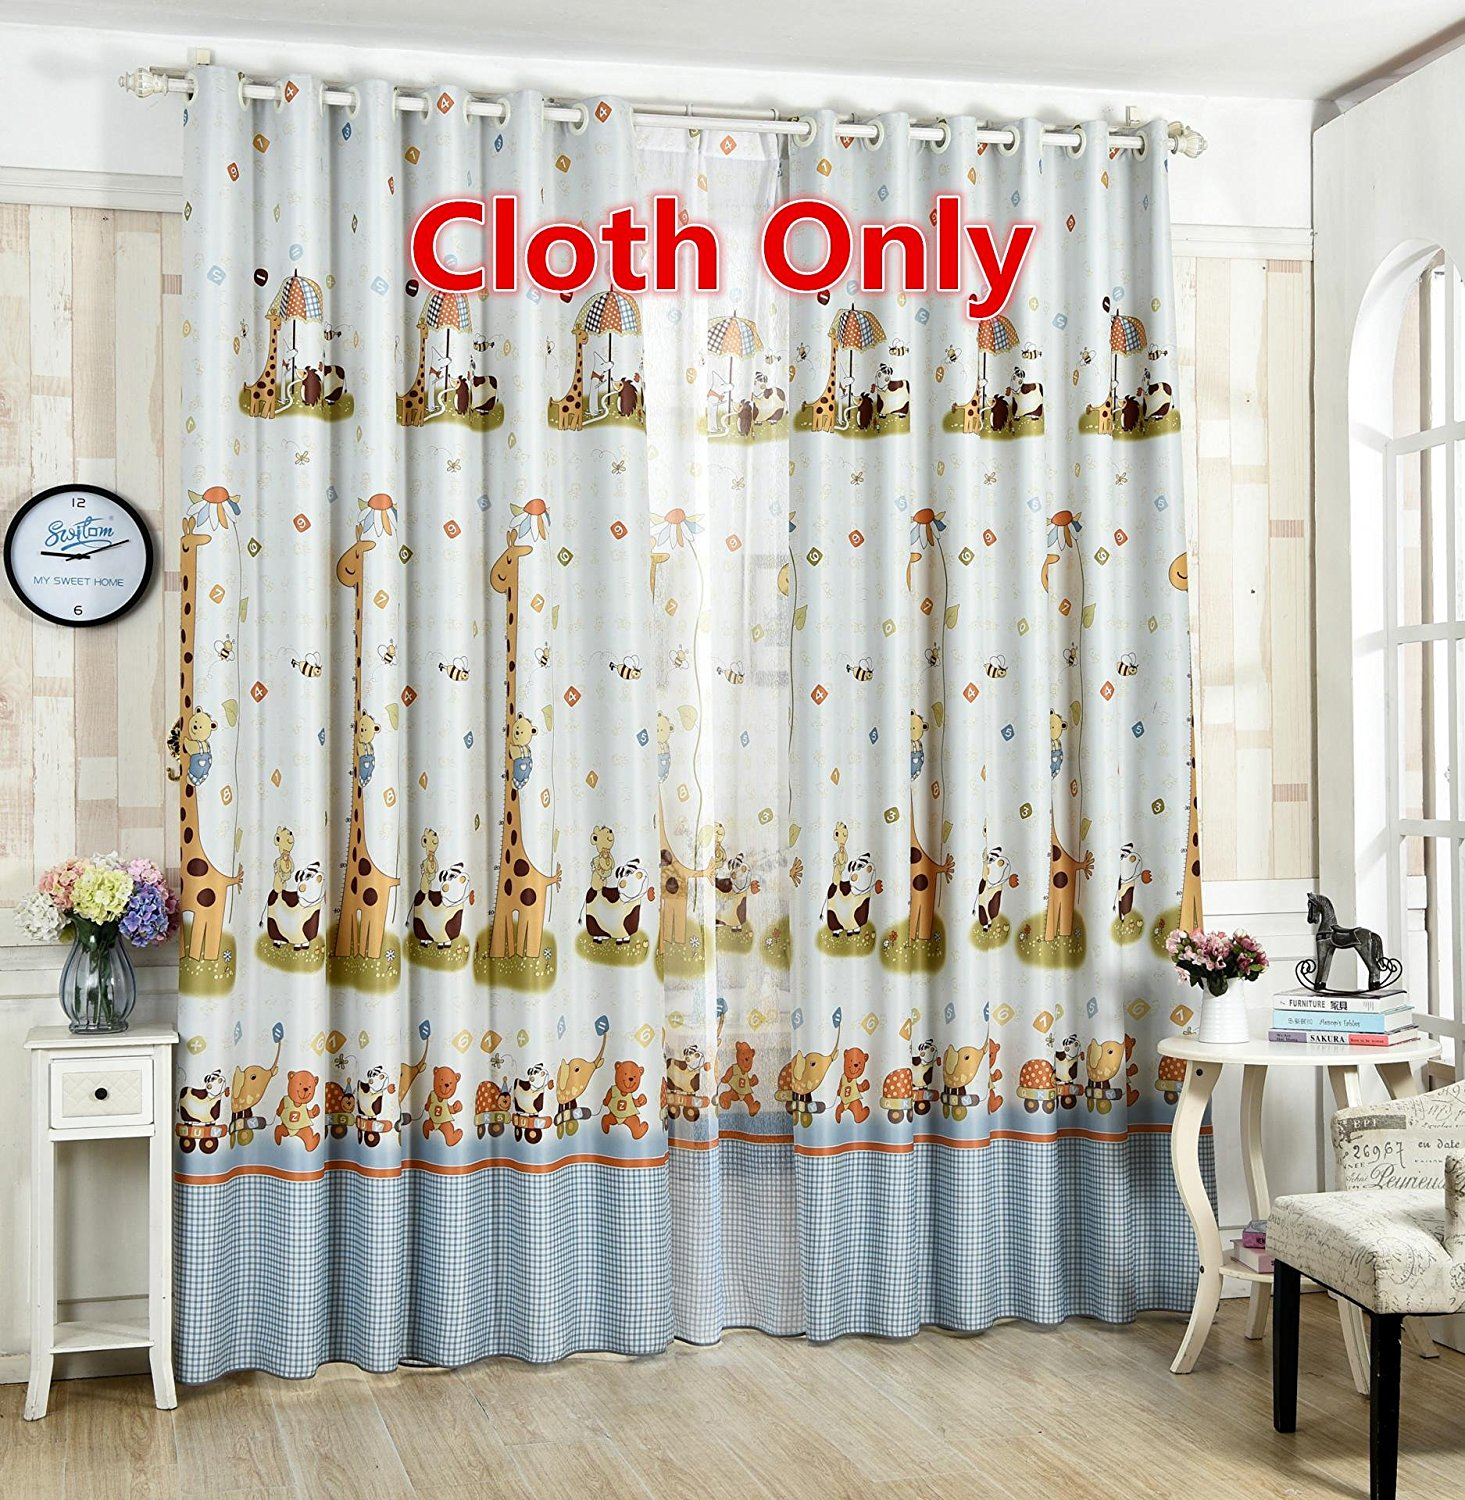 WPKIRA 1 Panel Kids Room Semi-Blackout Window Curtain Drapes Printed Window Treatments Panel Cartoon Giraffe Thermal Insulated Grommet Curtains 96 inch Long Shade Window Cover for Bedroom